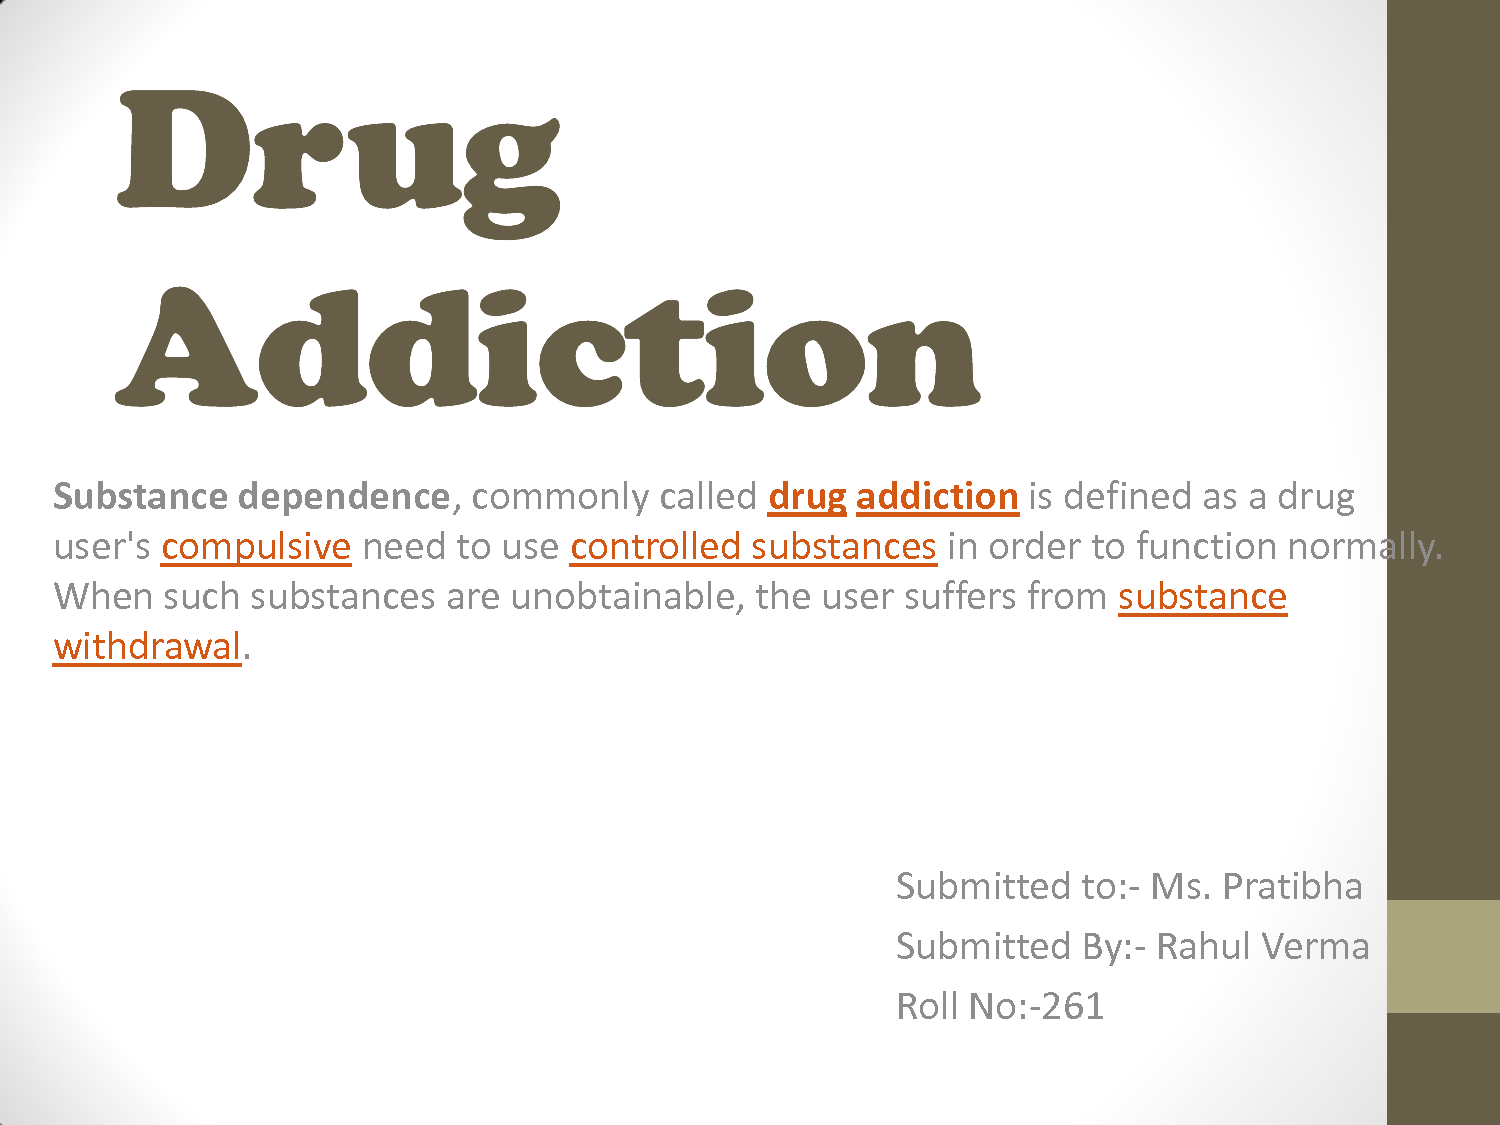 addictions and substance misuse essay Alcohol and substance abuse is being considered a major public health problem that is causing a negative impact on society every community is affected by some type of substance abuse and it is causing serious health problems in our society.